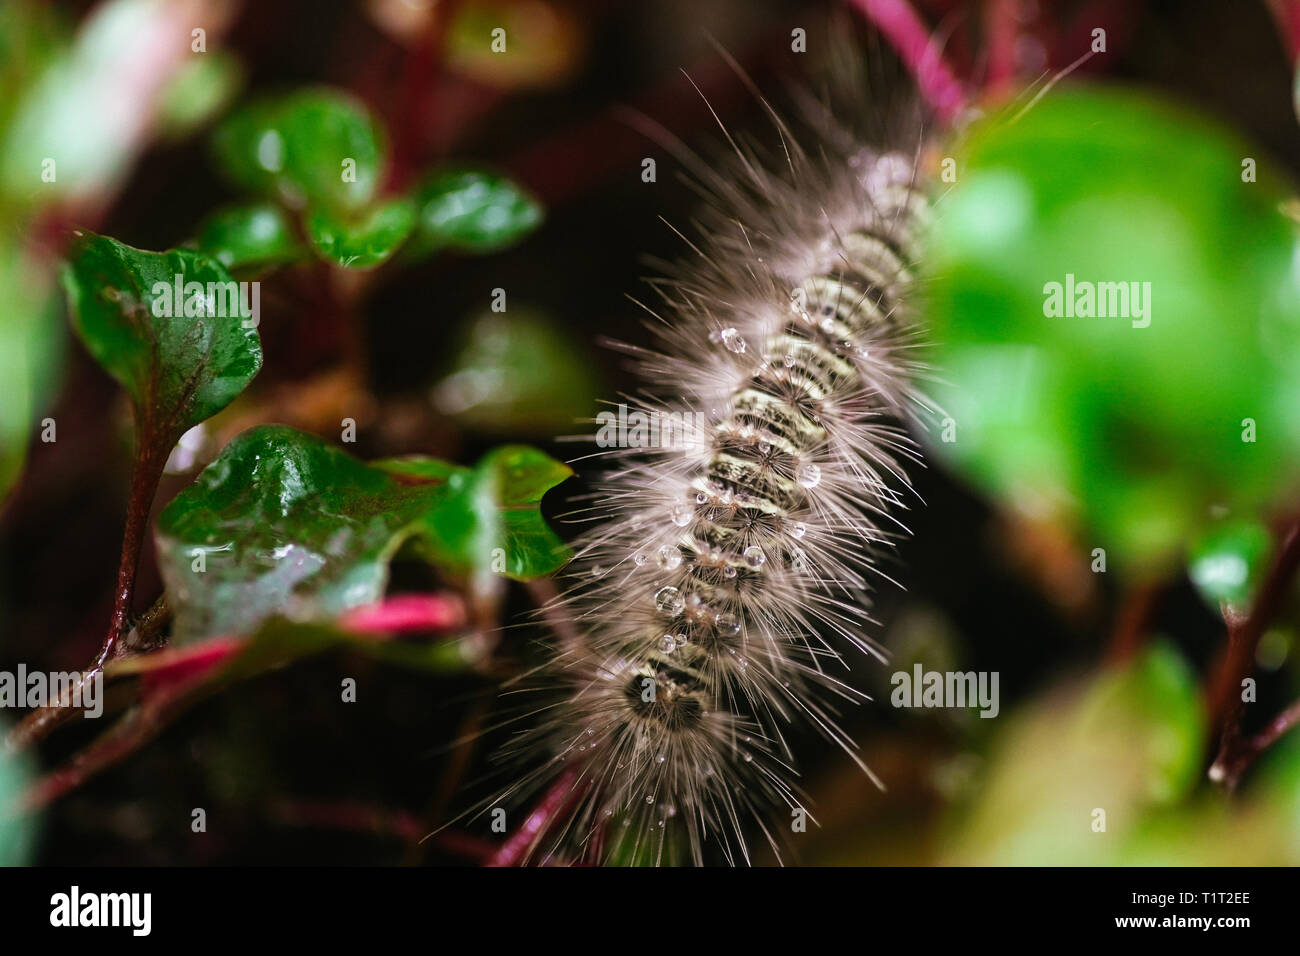 Gypsy moth caterpillar wet after the rain crawling on the leaf Stock Photo